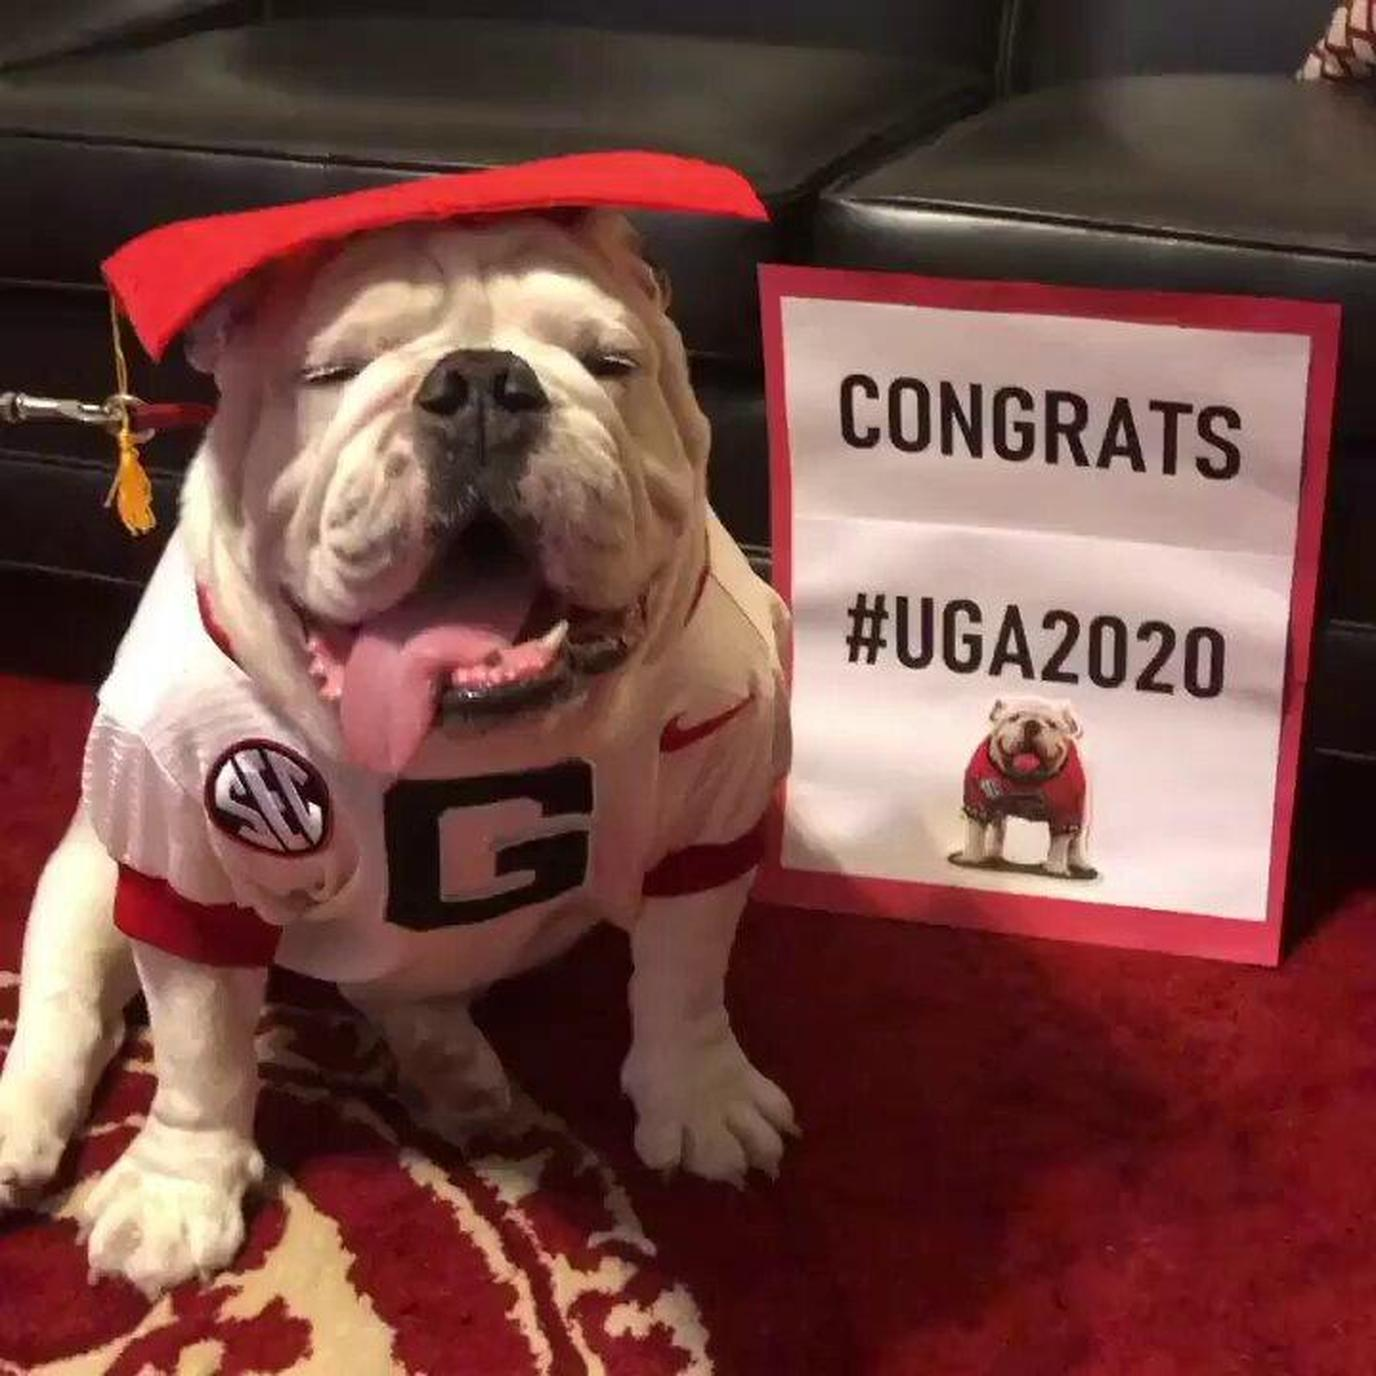 Uga X could go back to dog school this fall since he won't be at the college football games.